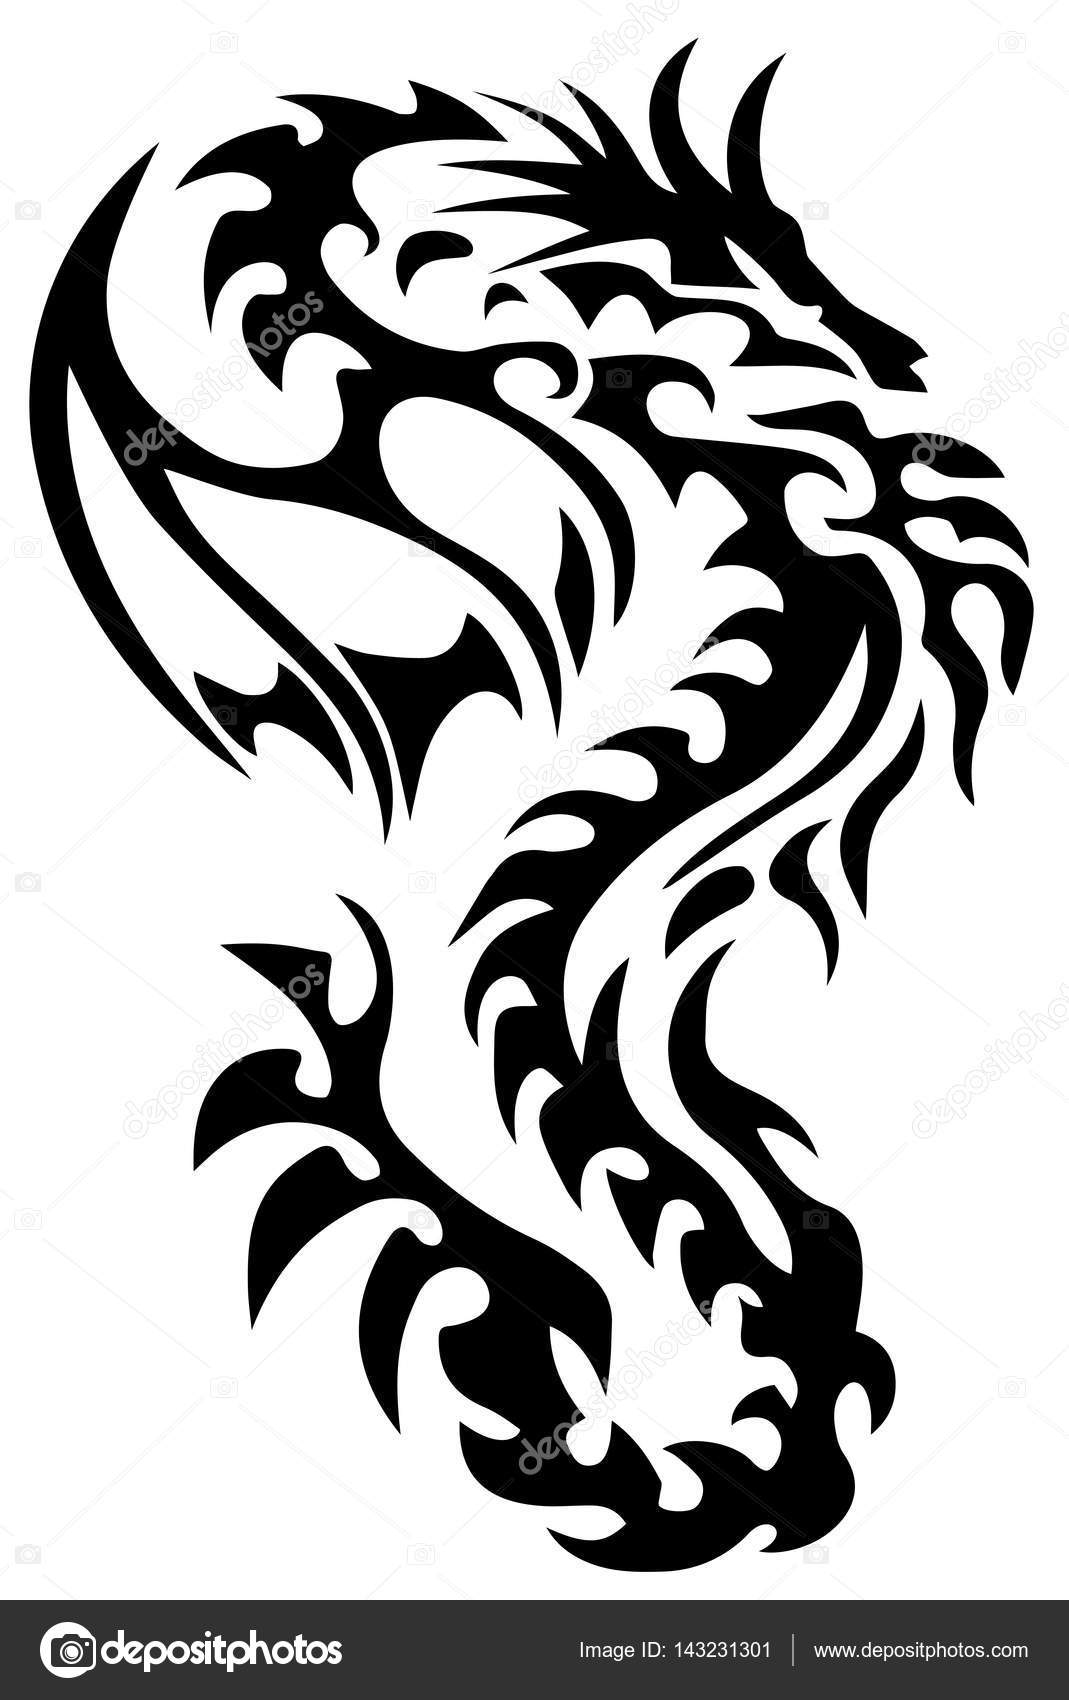 dragon images black and white free download best dragon images black and white on. Black Bedroom Furniture Sets. Home Design Ideas